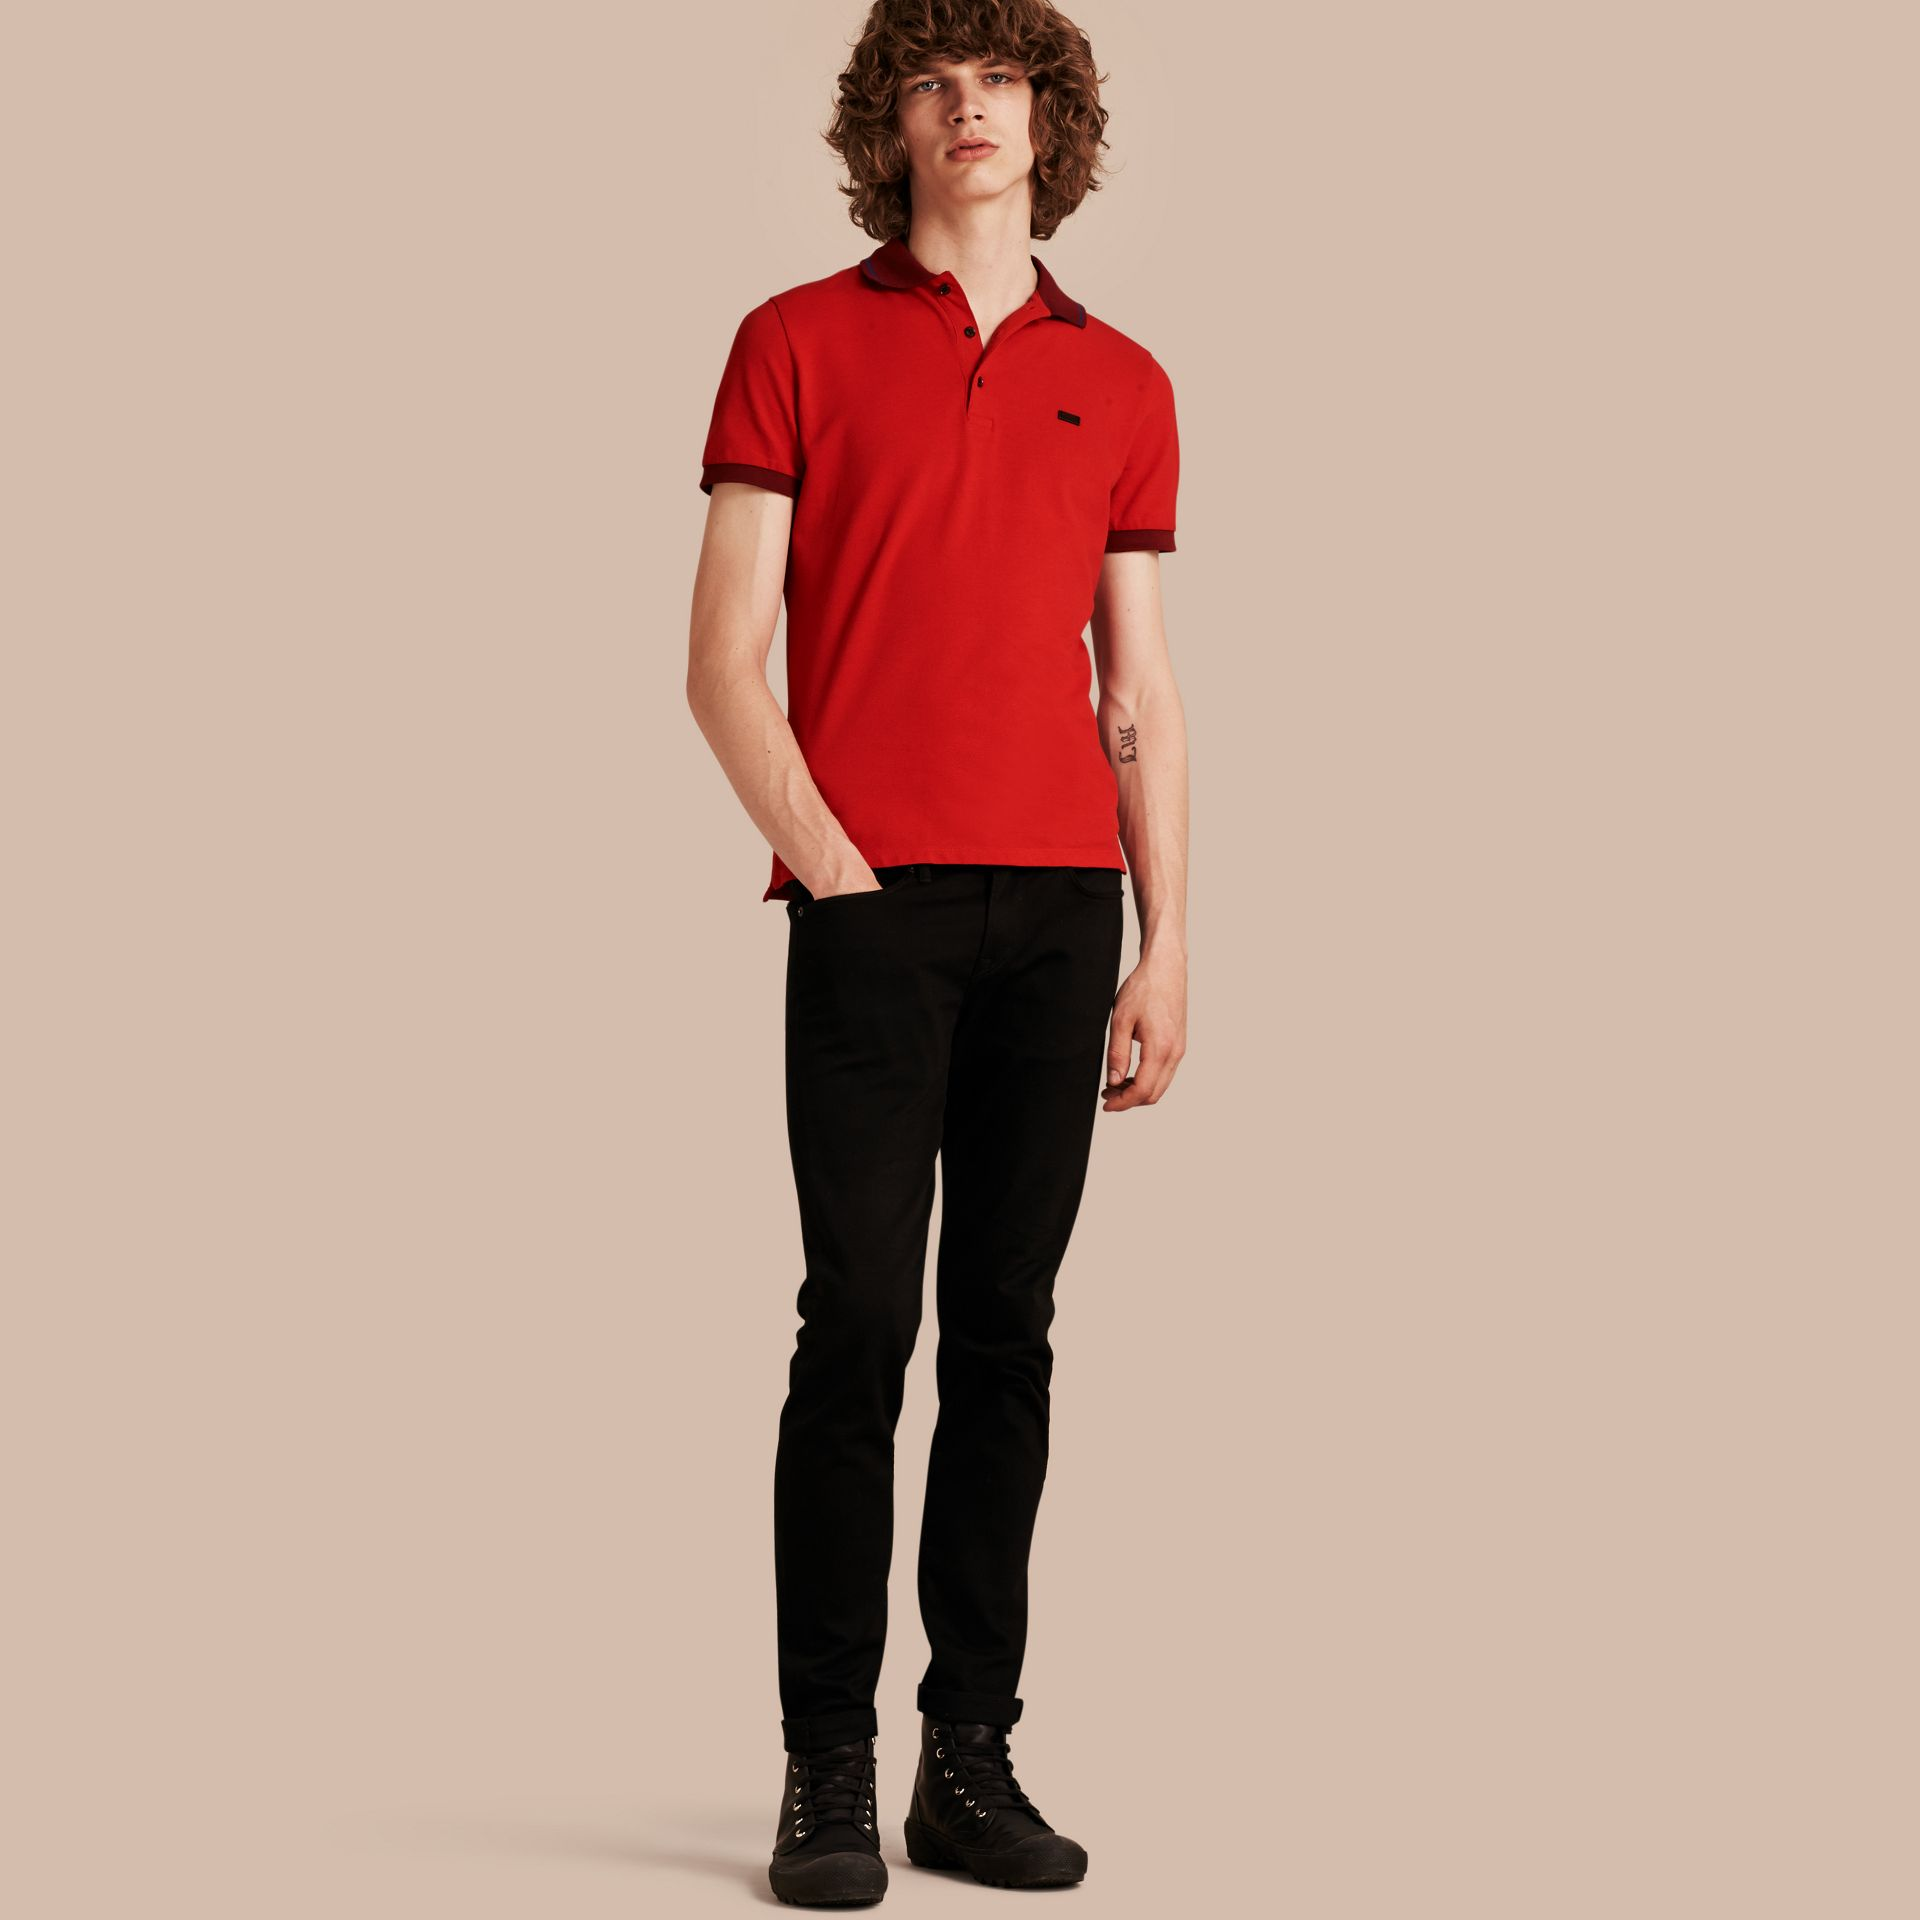 Union red/dark blue Contrast Trim Cotton Piqué Polo Shirt Union Red/dark Blue - gallery image 1